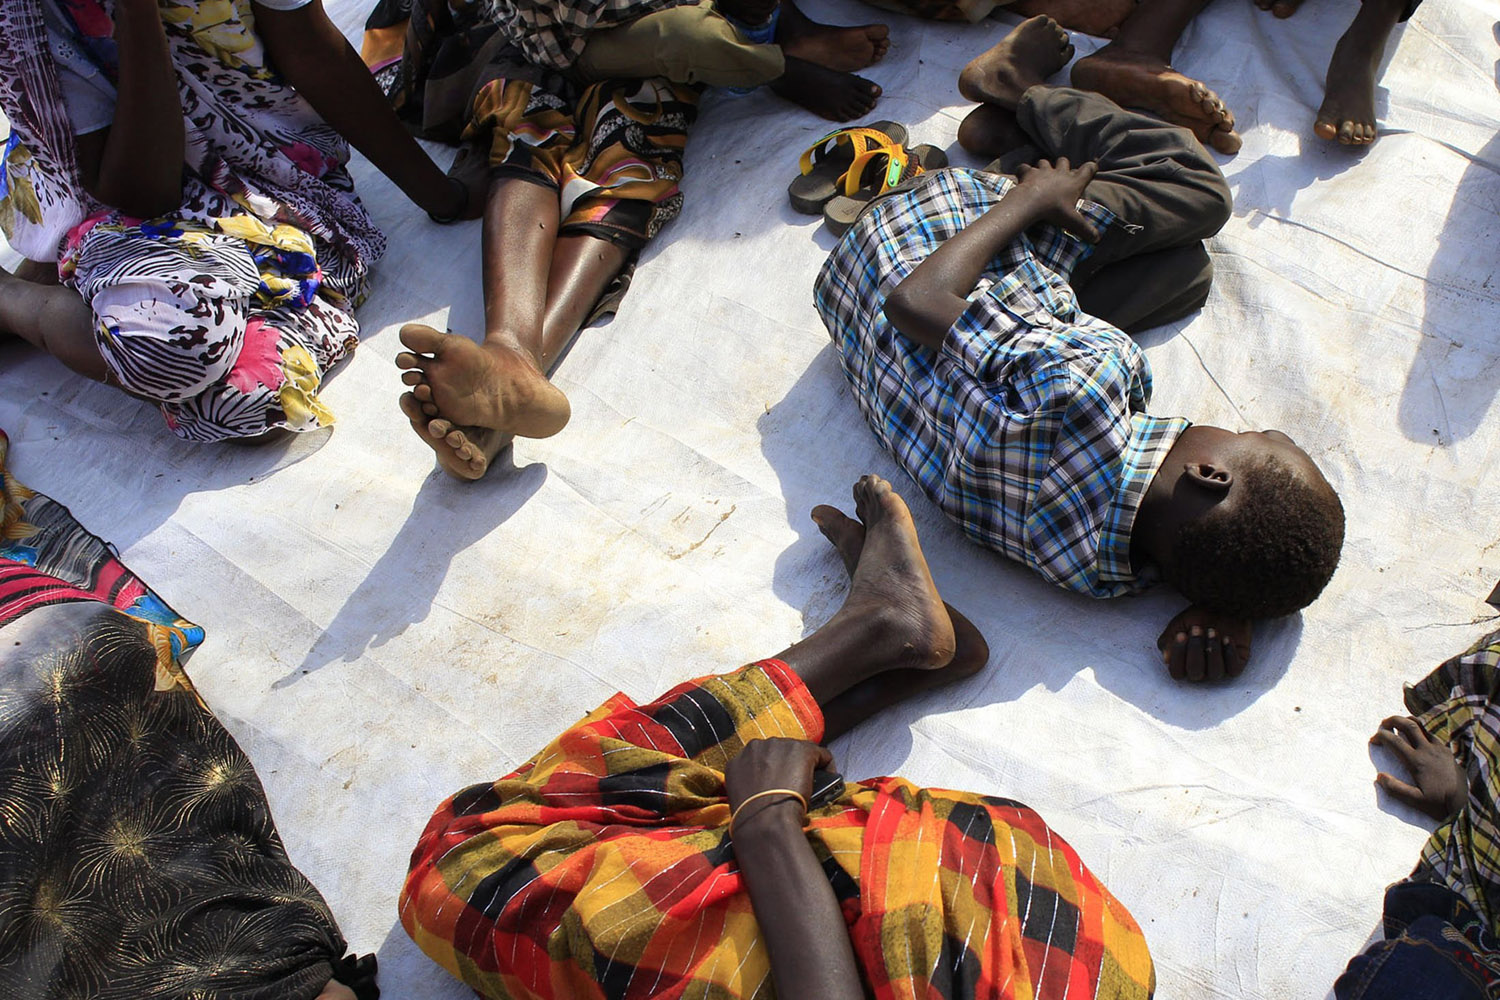 Jan. 7, 2014. Displaced people rest on the floor as they wait for medical attention at an emergency clinic run by Medecins Sans Frontieres (MSN) at Tomping camp in Juba, where some 15,000 displaced people who fled their homes are sheltered by the United Nations.